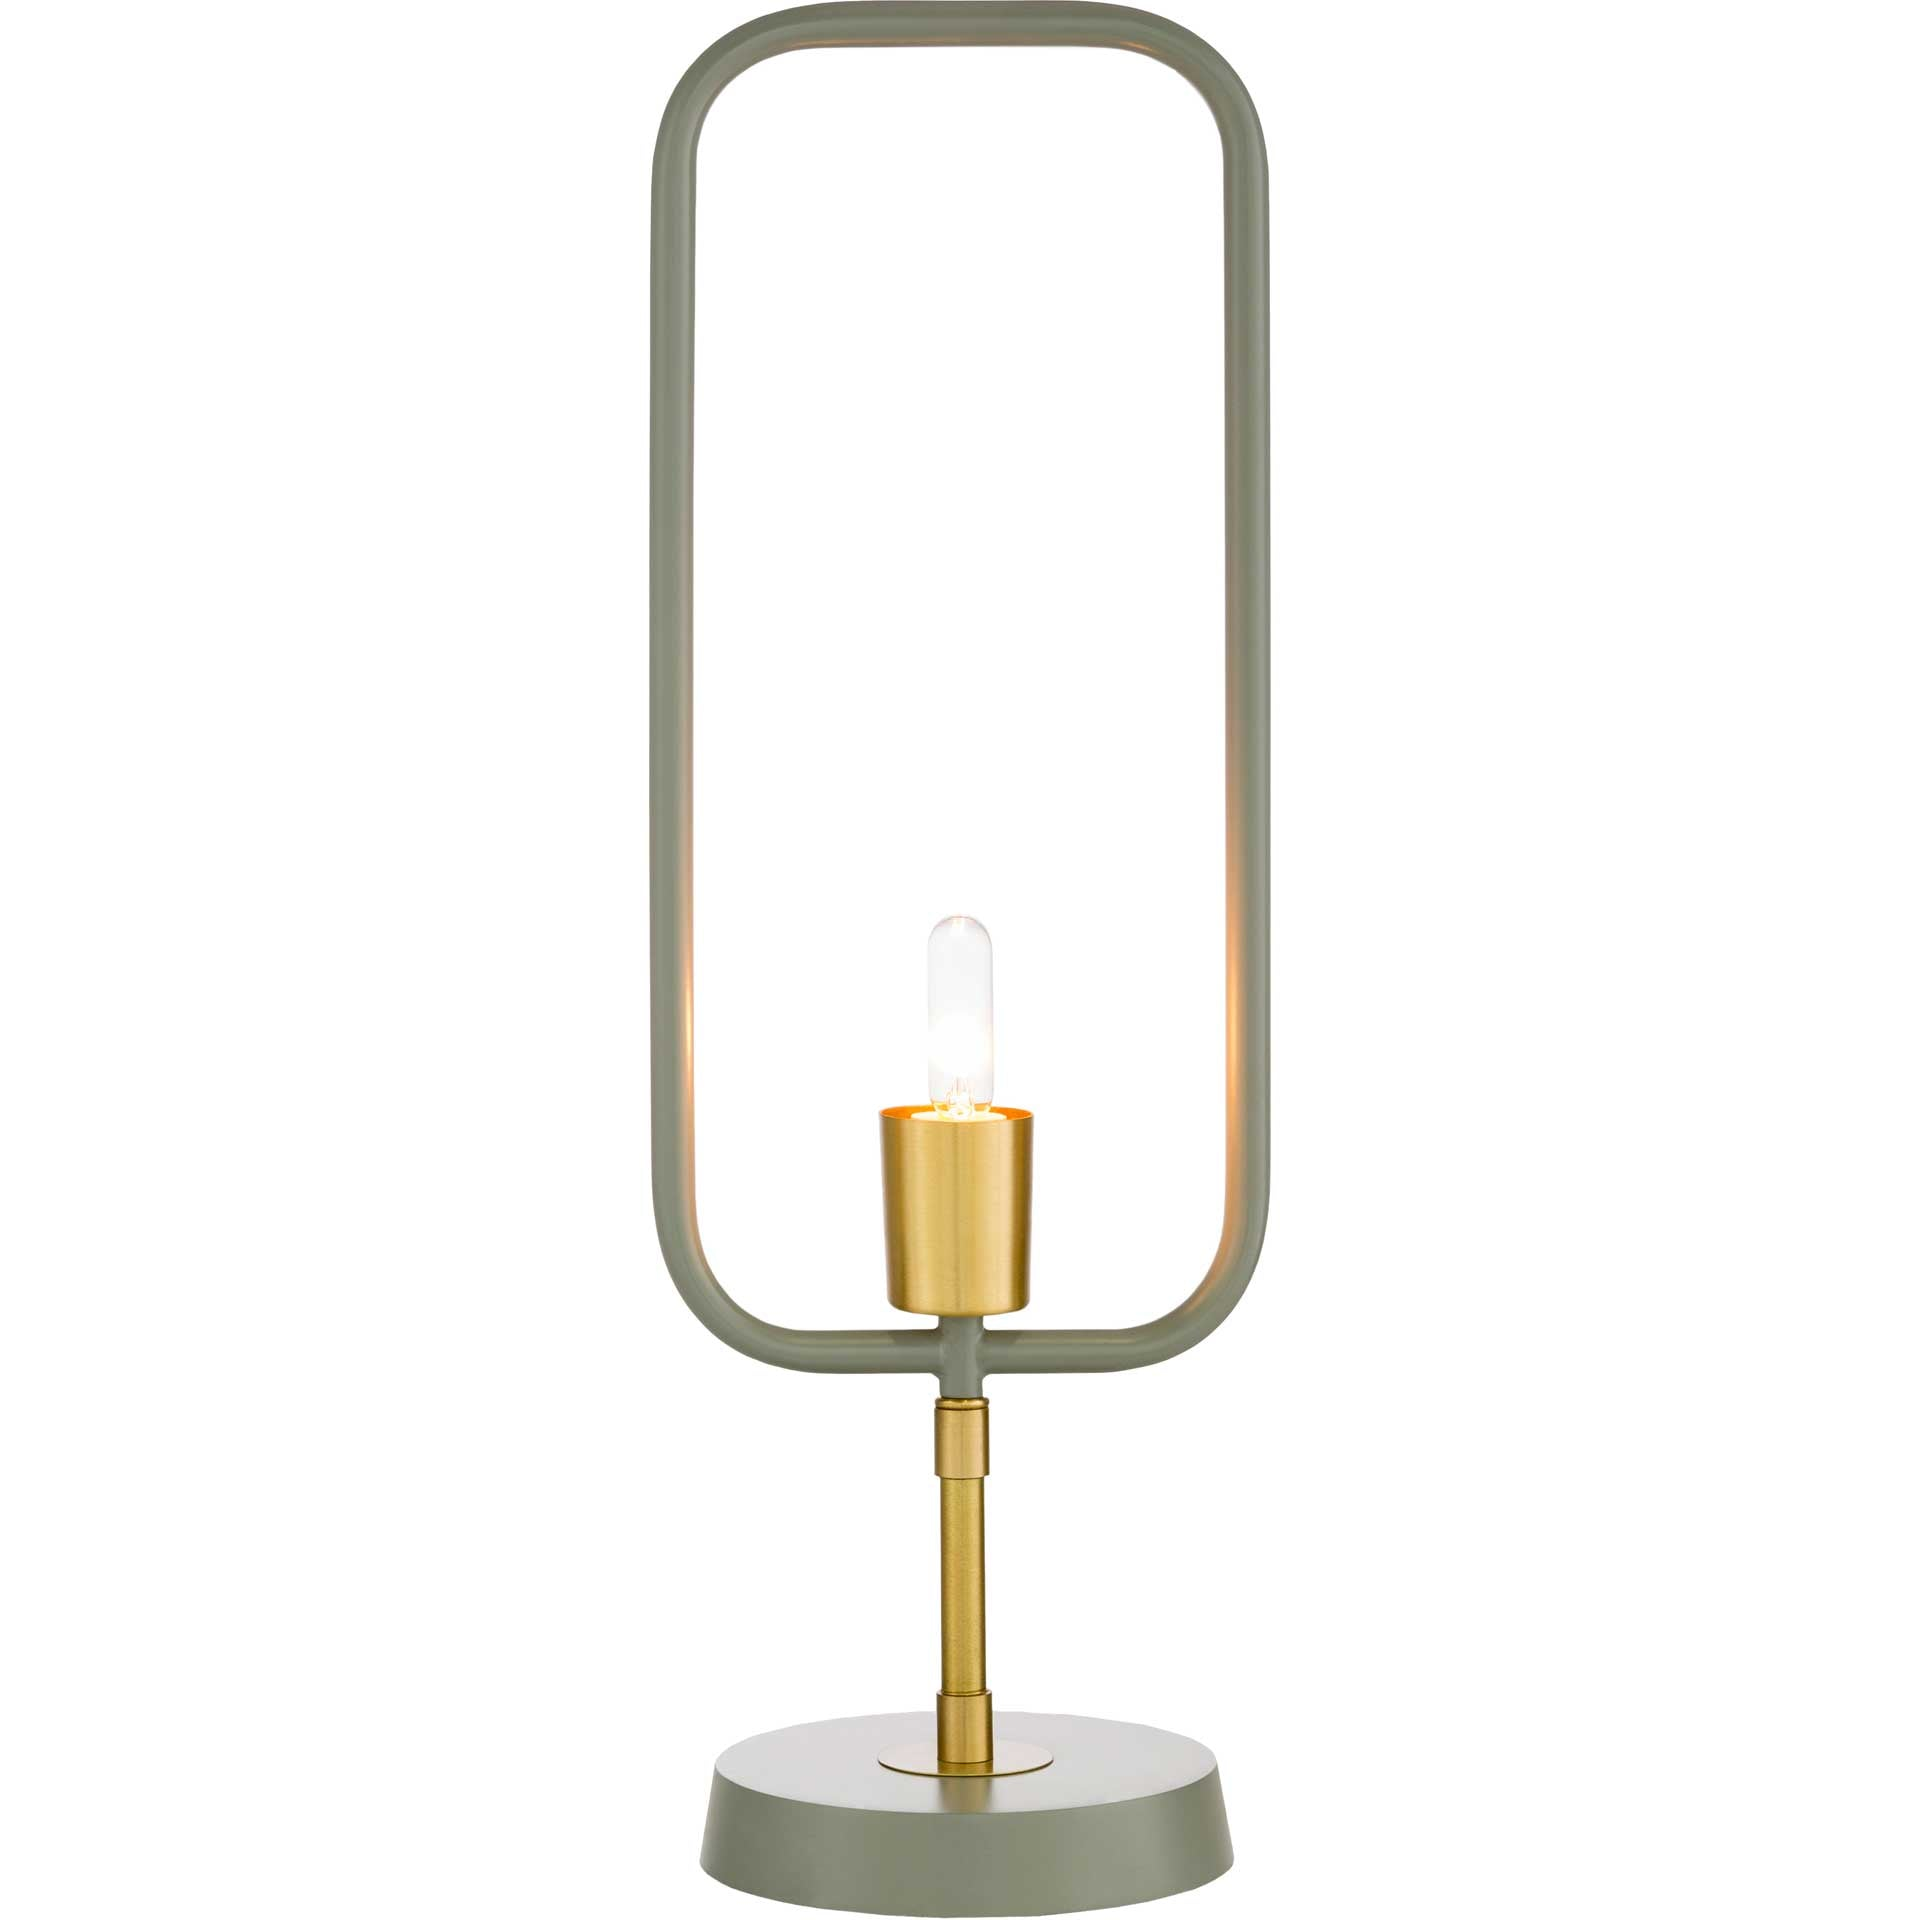 Bodhi Table Lamp Medium Gray/Brass/Gray